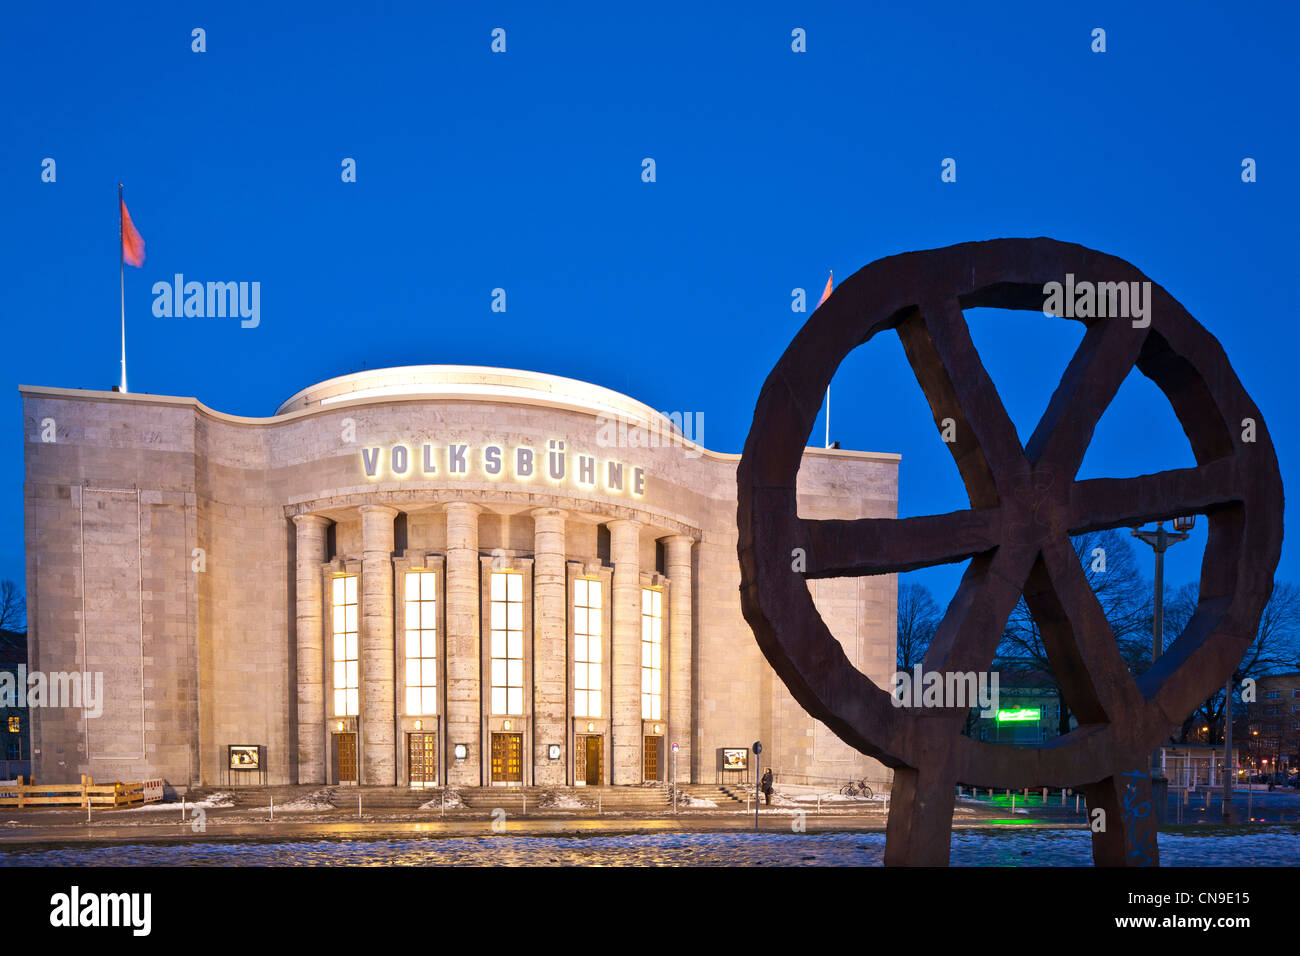 Germany, Berlin, Mitte, Rosa-Luxemburg-Platz, Volksbühne, a theater built in 1914 by architect Oskar Kaufmann, - Stock Image